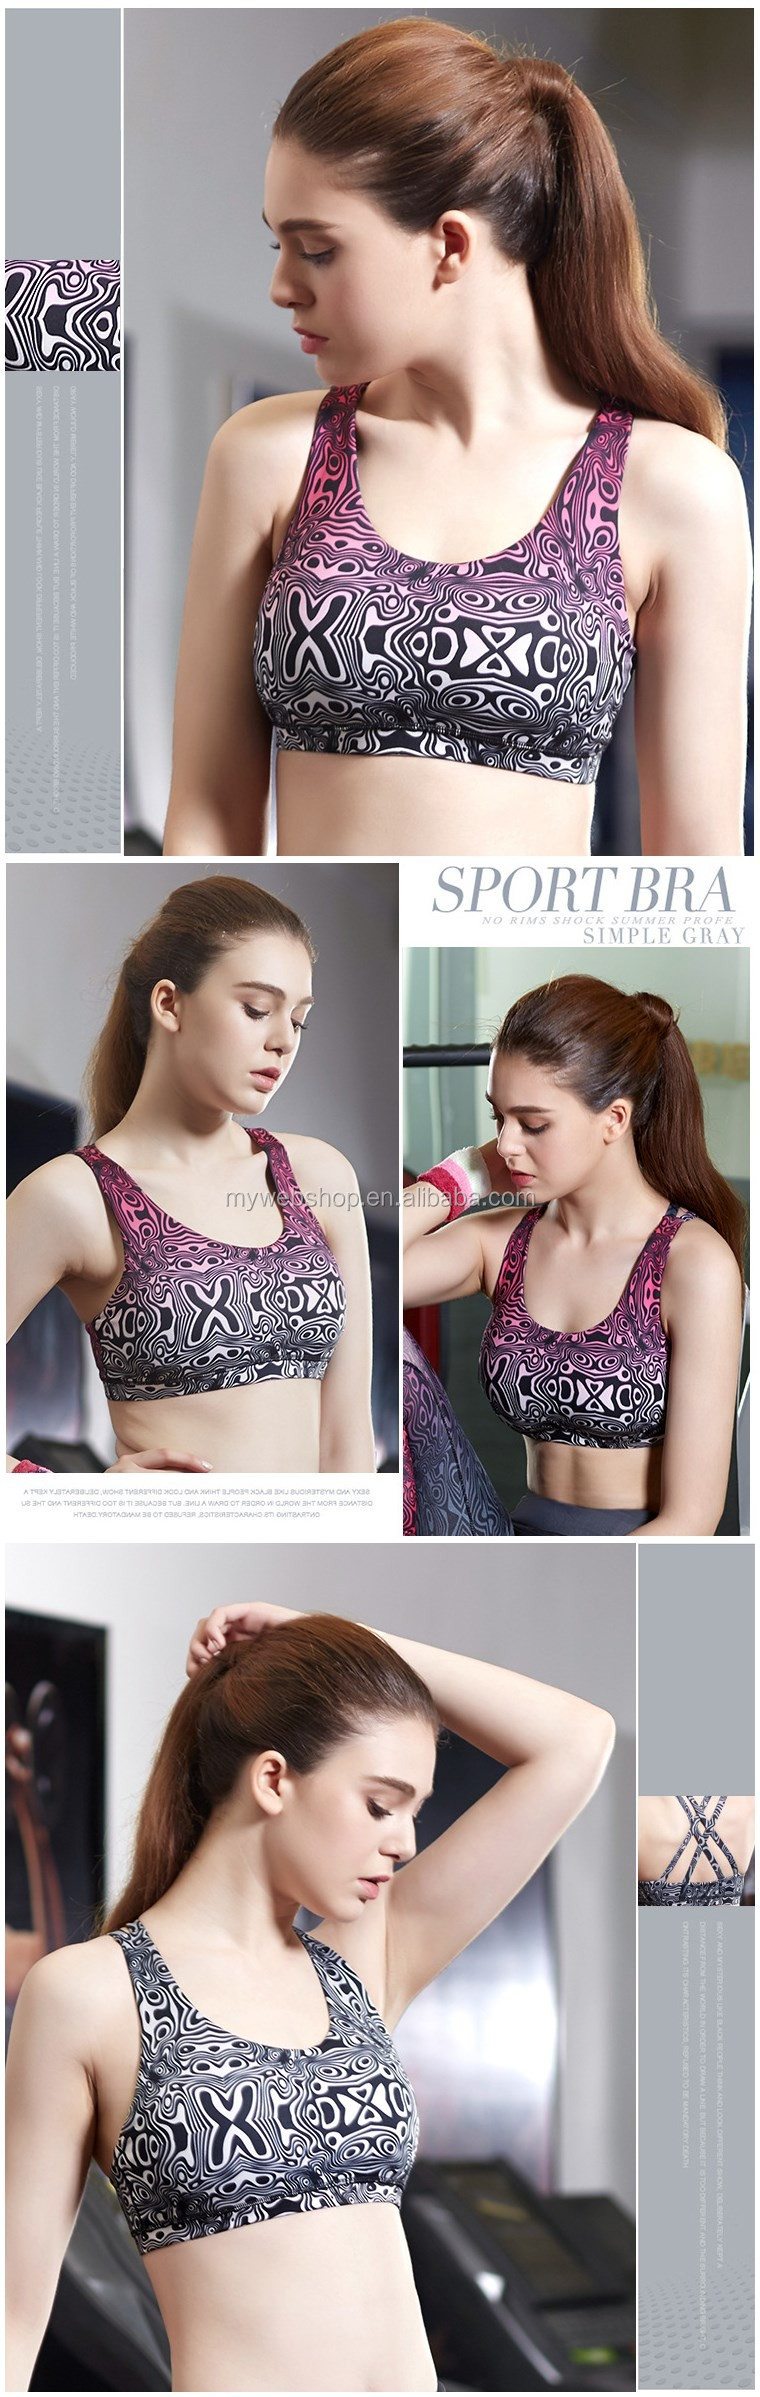 Women Sports Bra For Running Gym Padded Wirefree Shakeproof Underwear Push Up Fitness Top Bras For Woman Summer Style